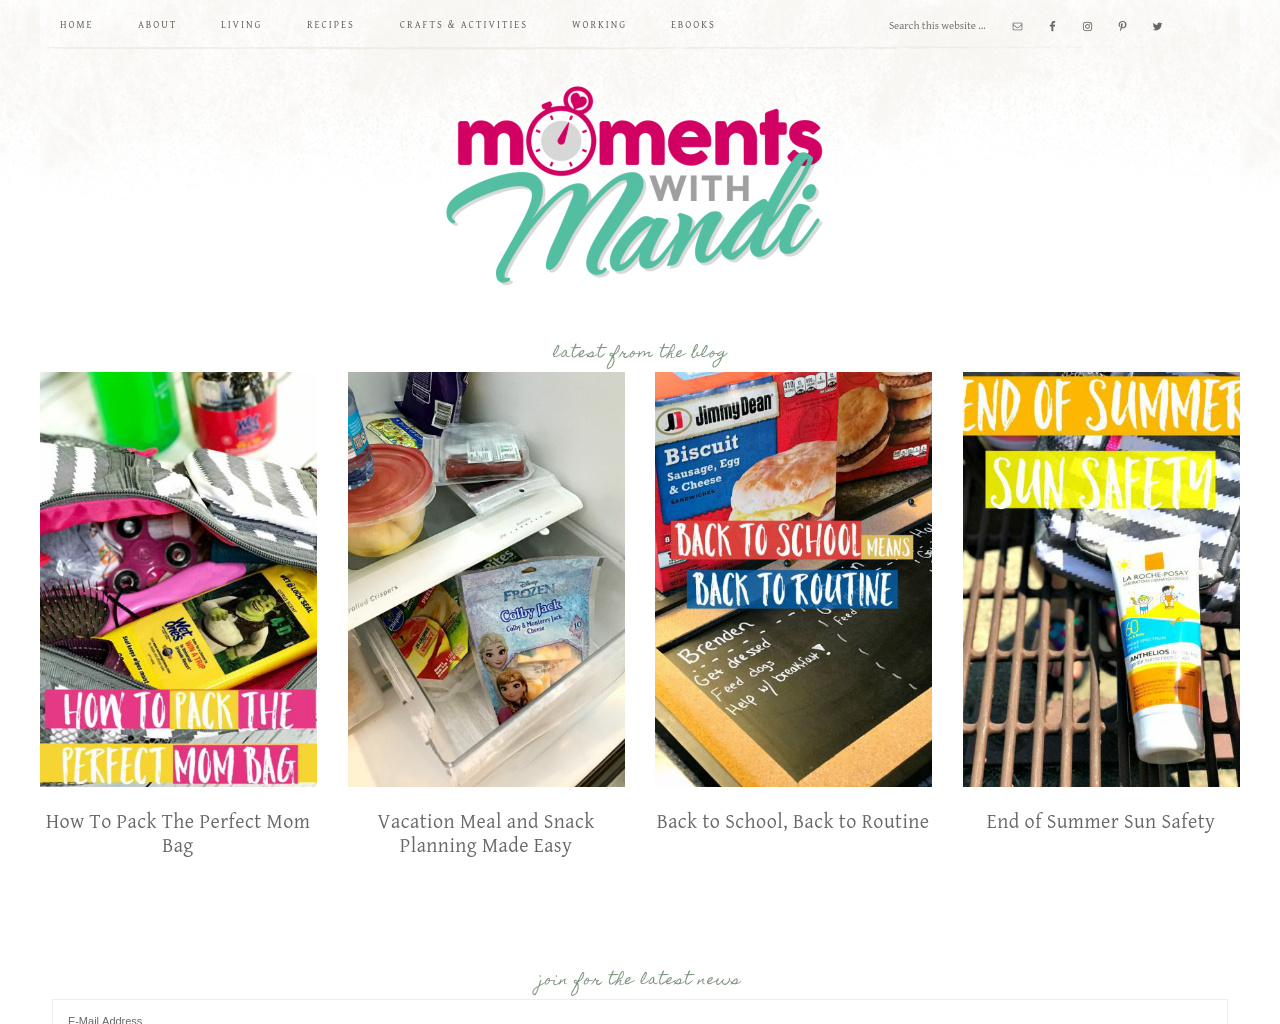 Moments-With-Mandi-Advertising-Reviews-Pricing